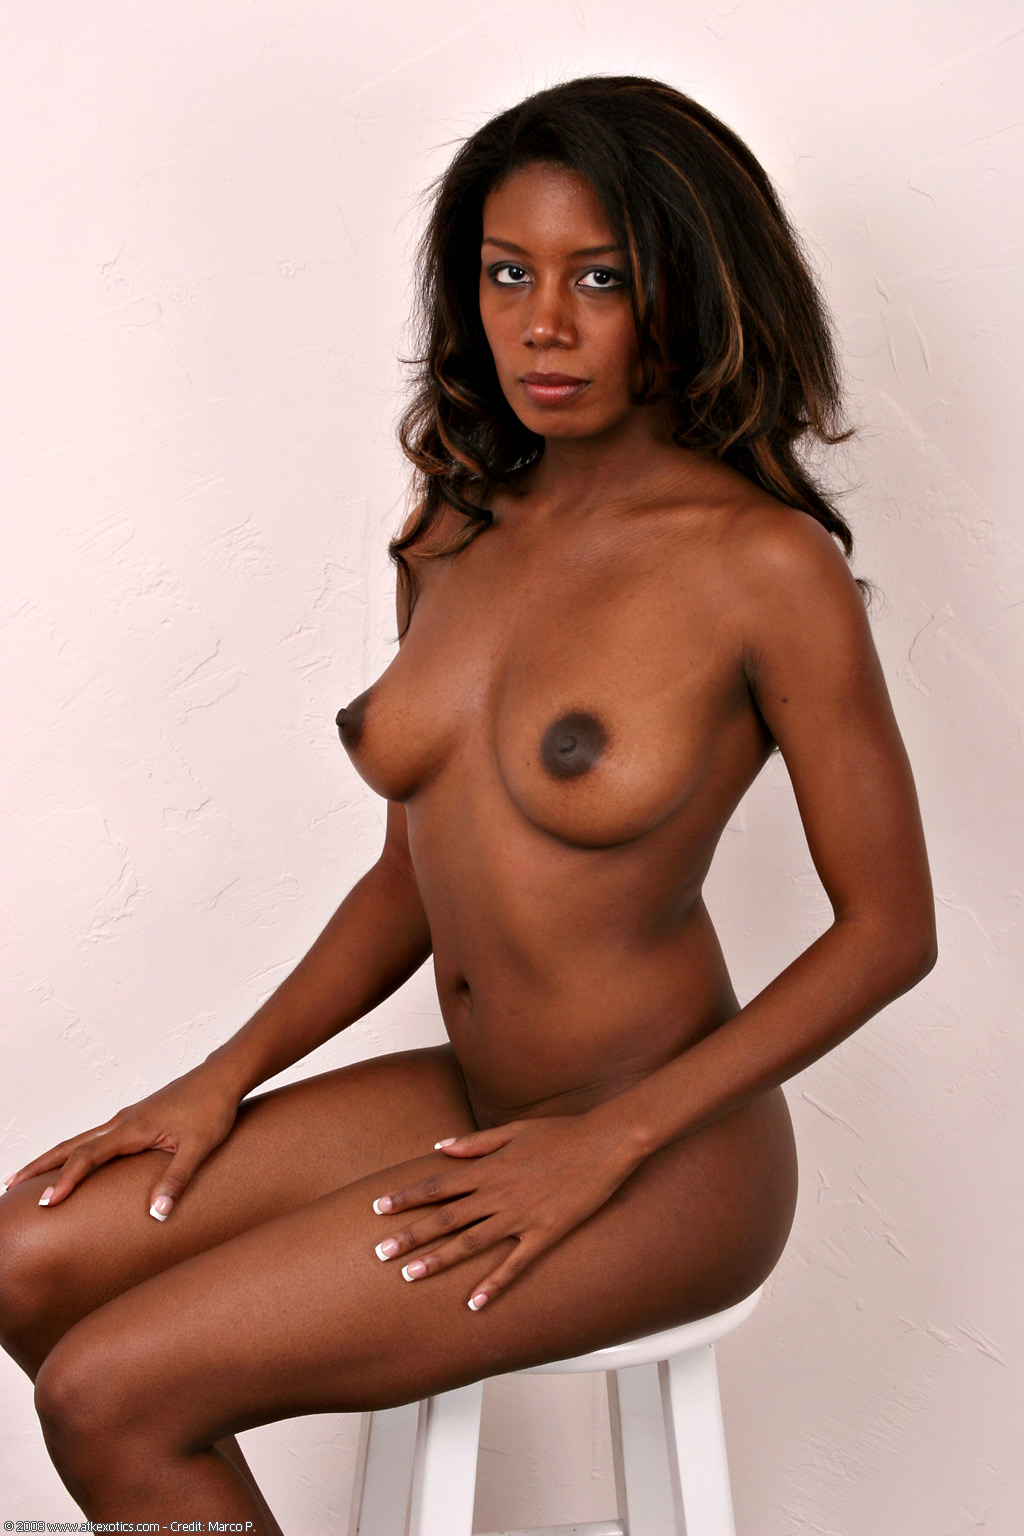 Exotic nude black women apologise, but